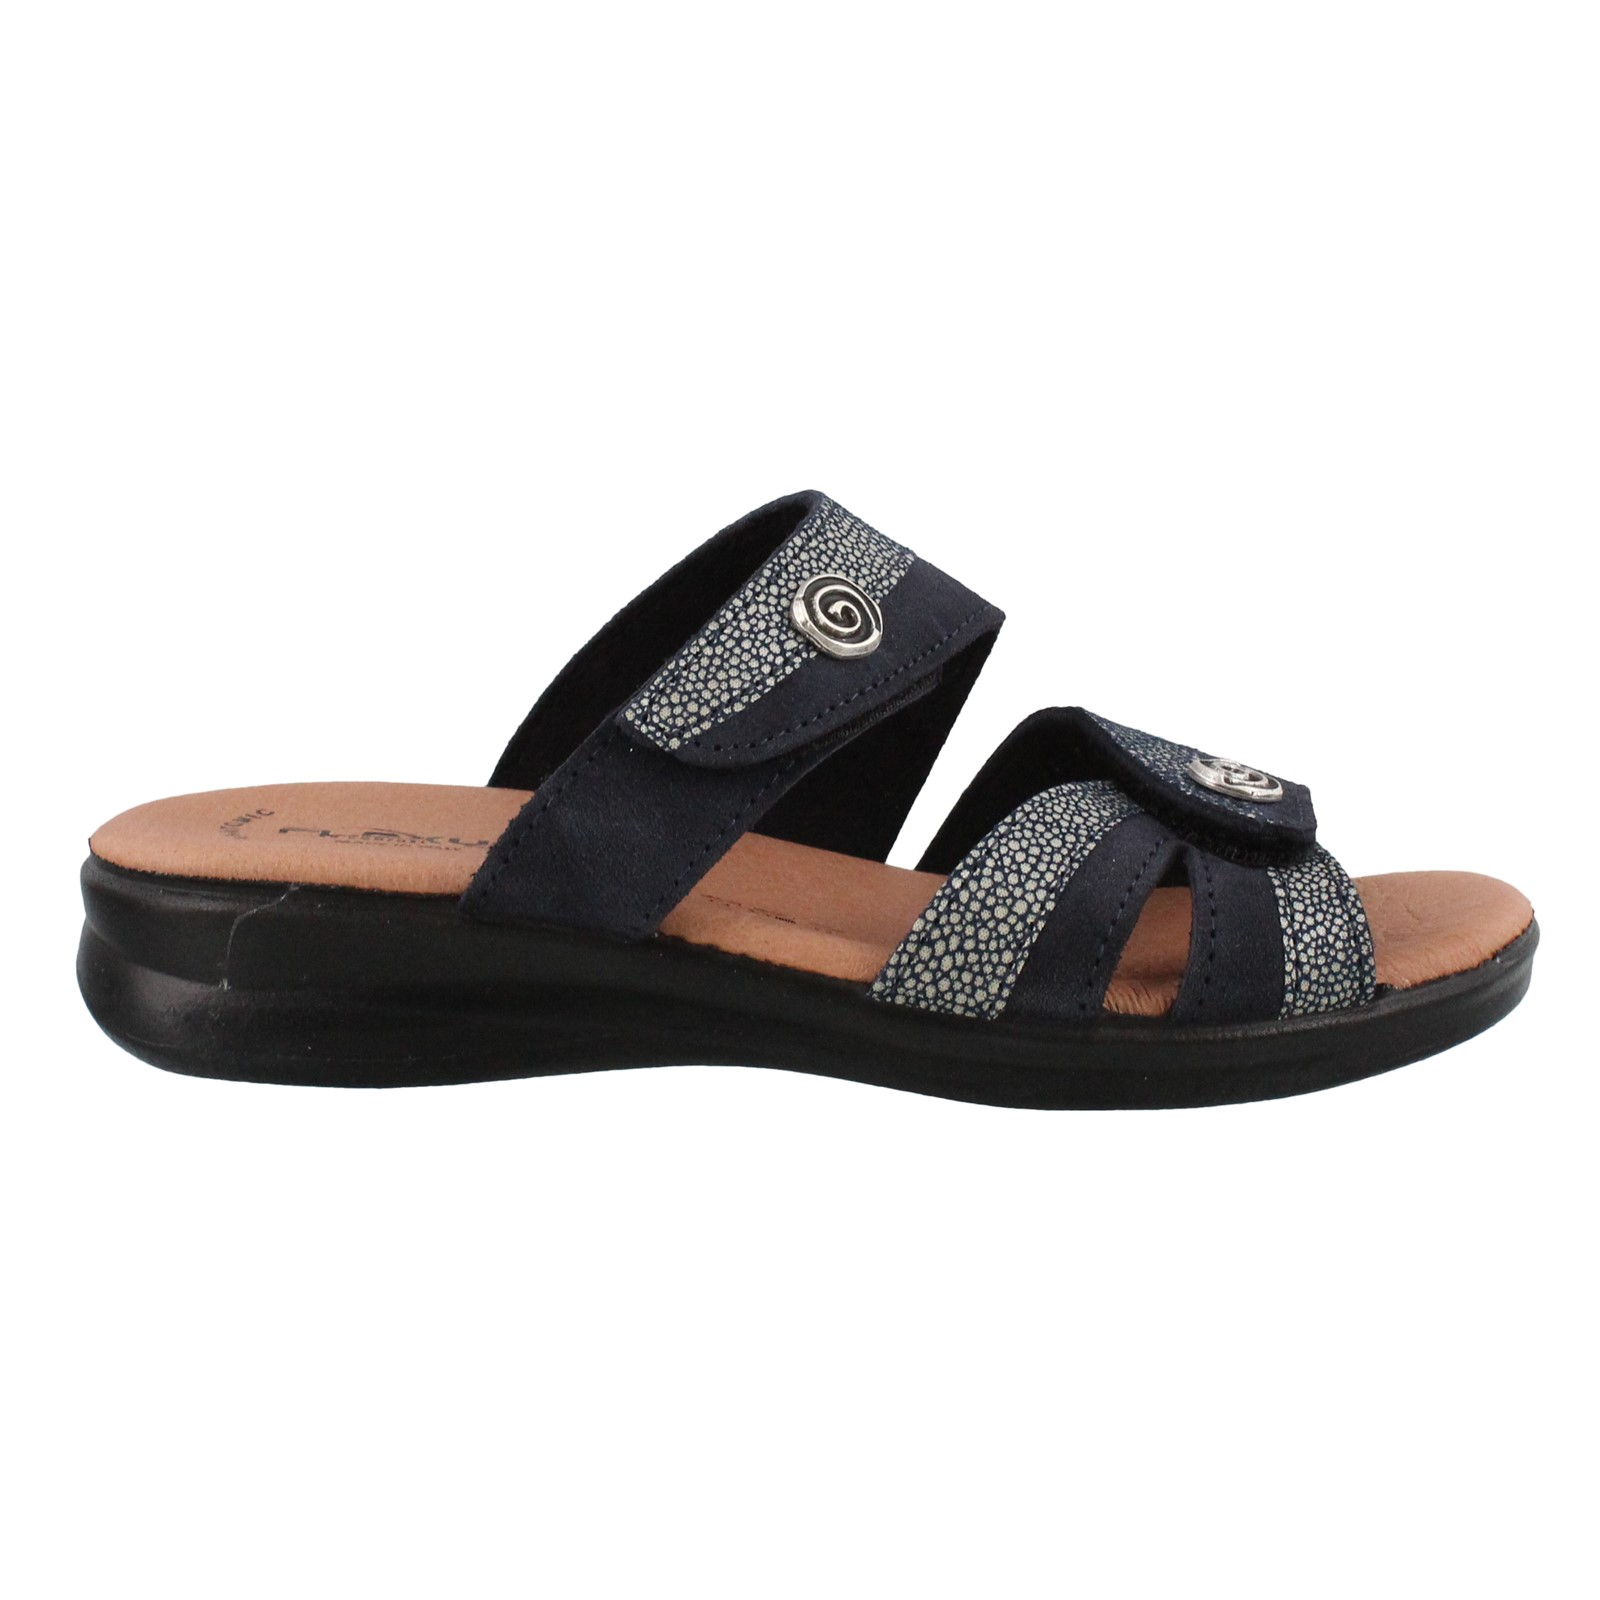 Women's Flexus, Quasida Slide Sandals